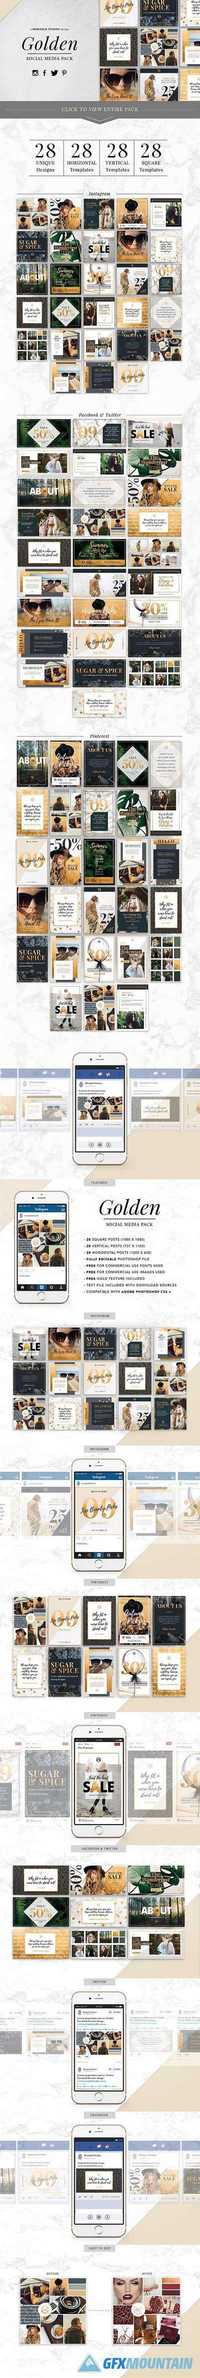 GOLDEN Theme | Social Media Pack 1032915